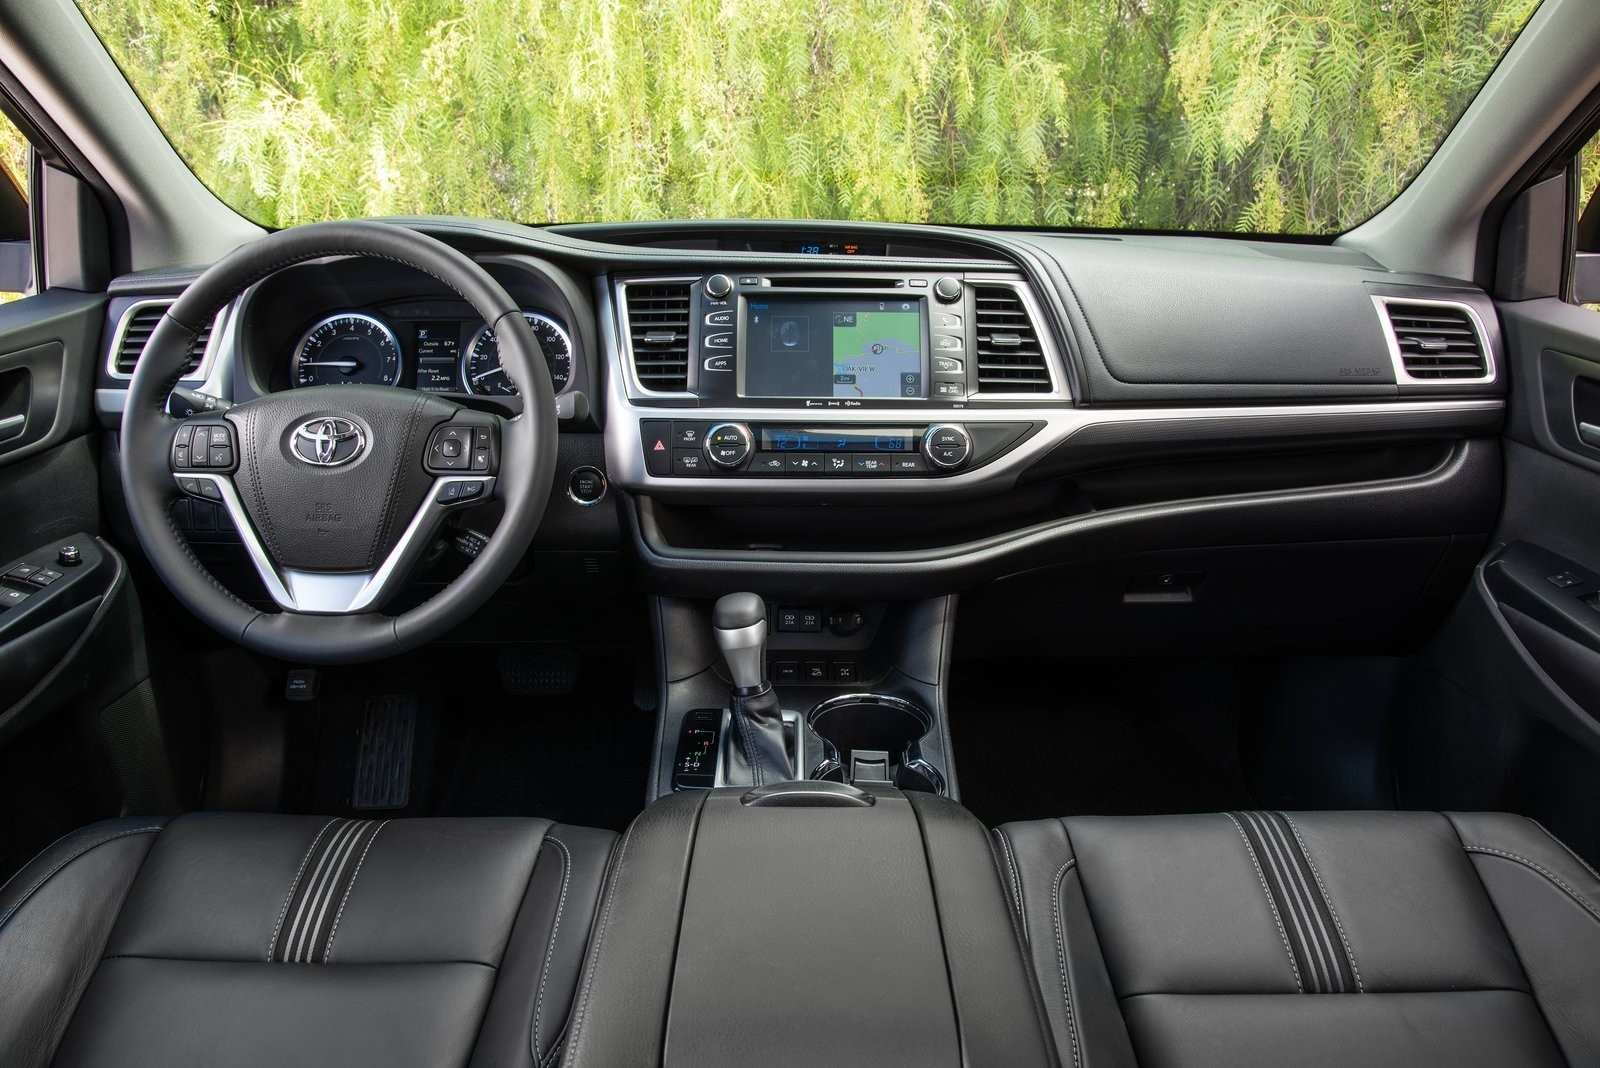 72 All New Highlander Toyota 2019 Interior Review Specs And Release Date New Review for Highlander Toyota 2019 Interior Review Specs And Release Date